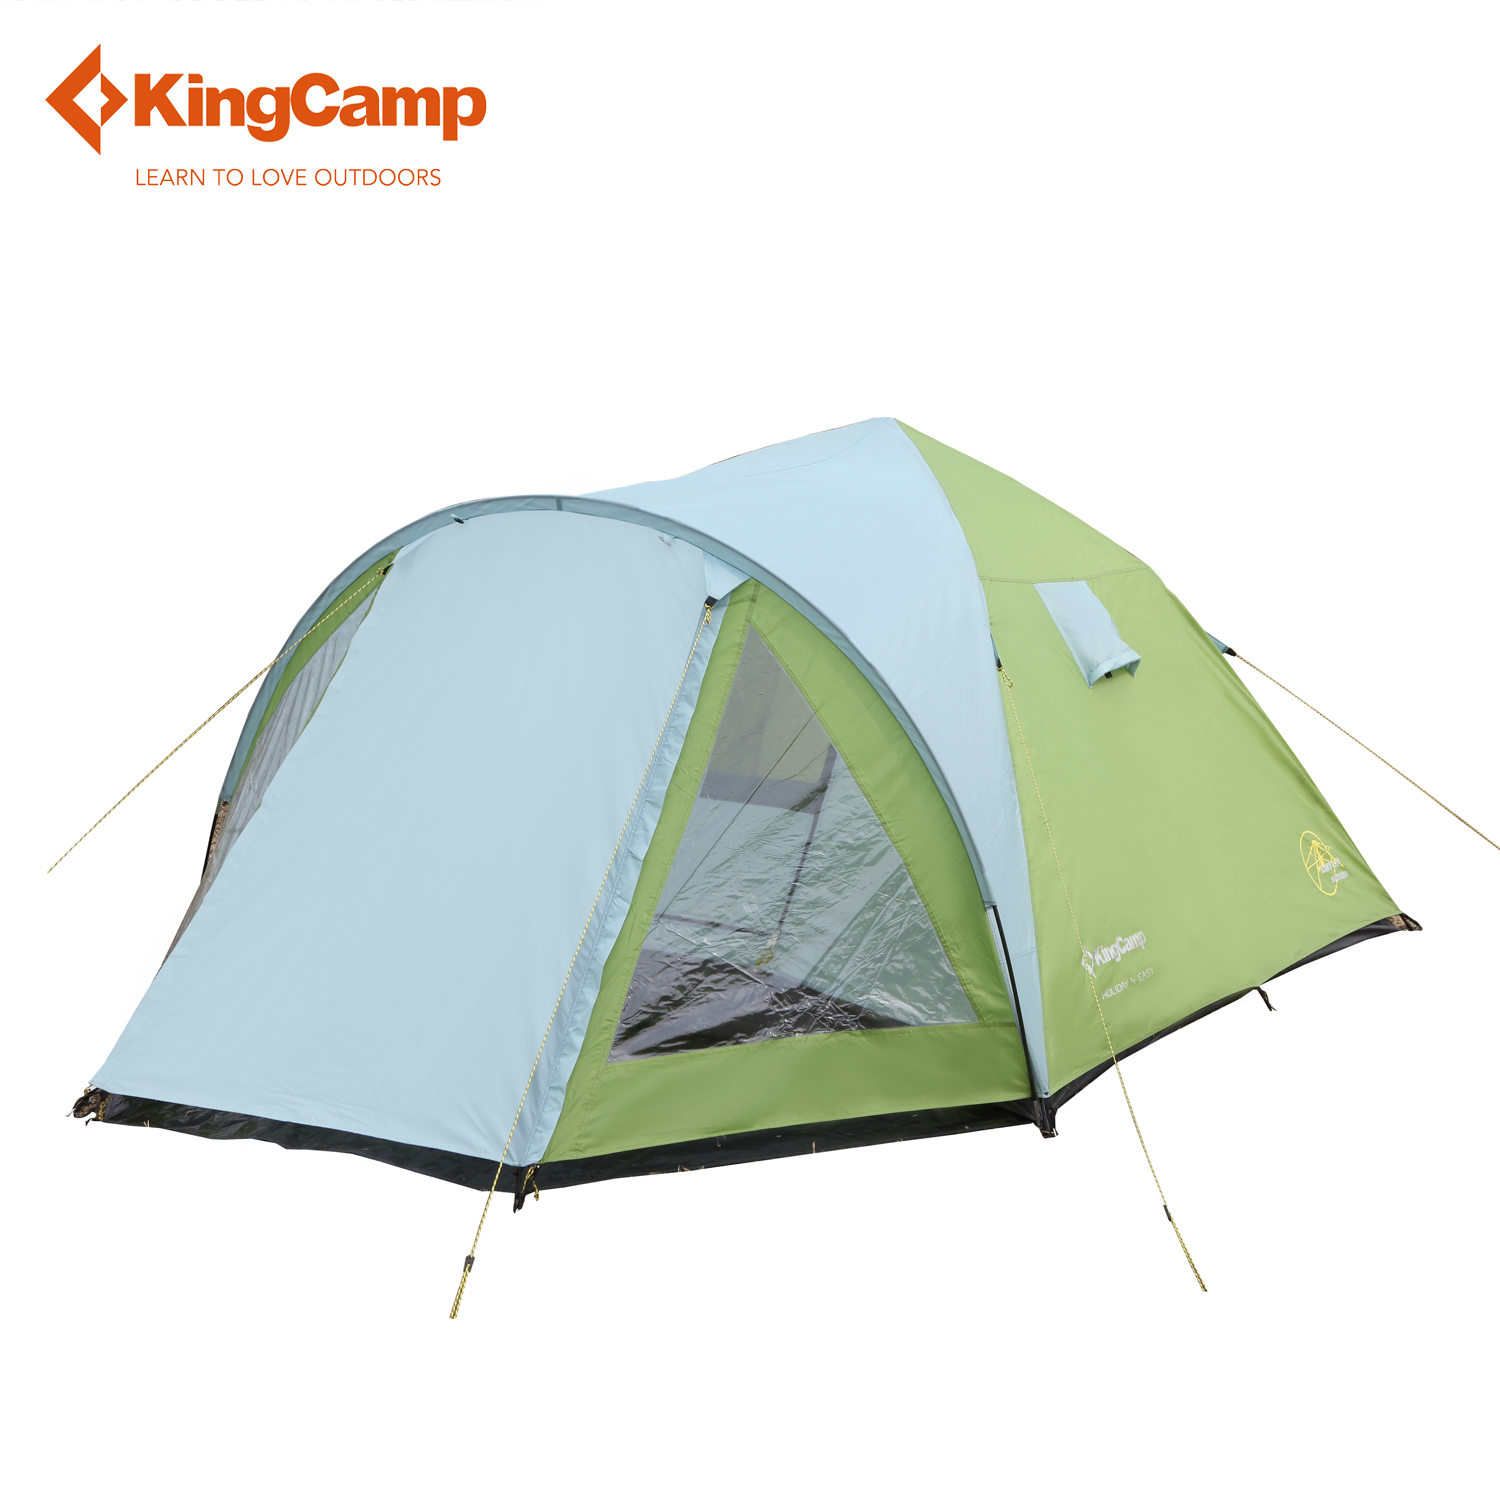 KingCamp Holiday Easy-Up 4-Person 3-Season Outdoor Tent for Family Camping ...